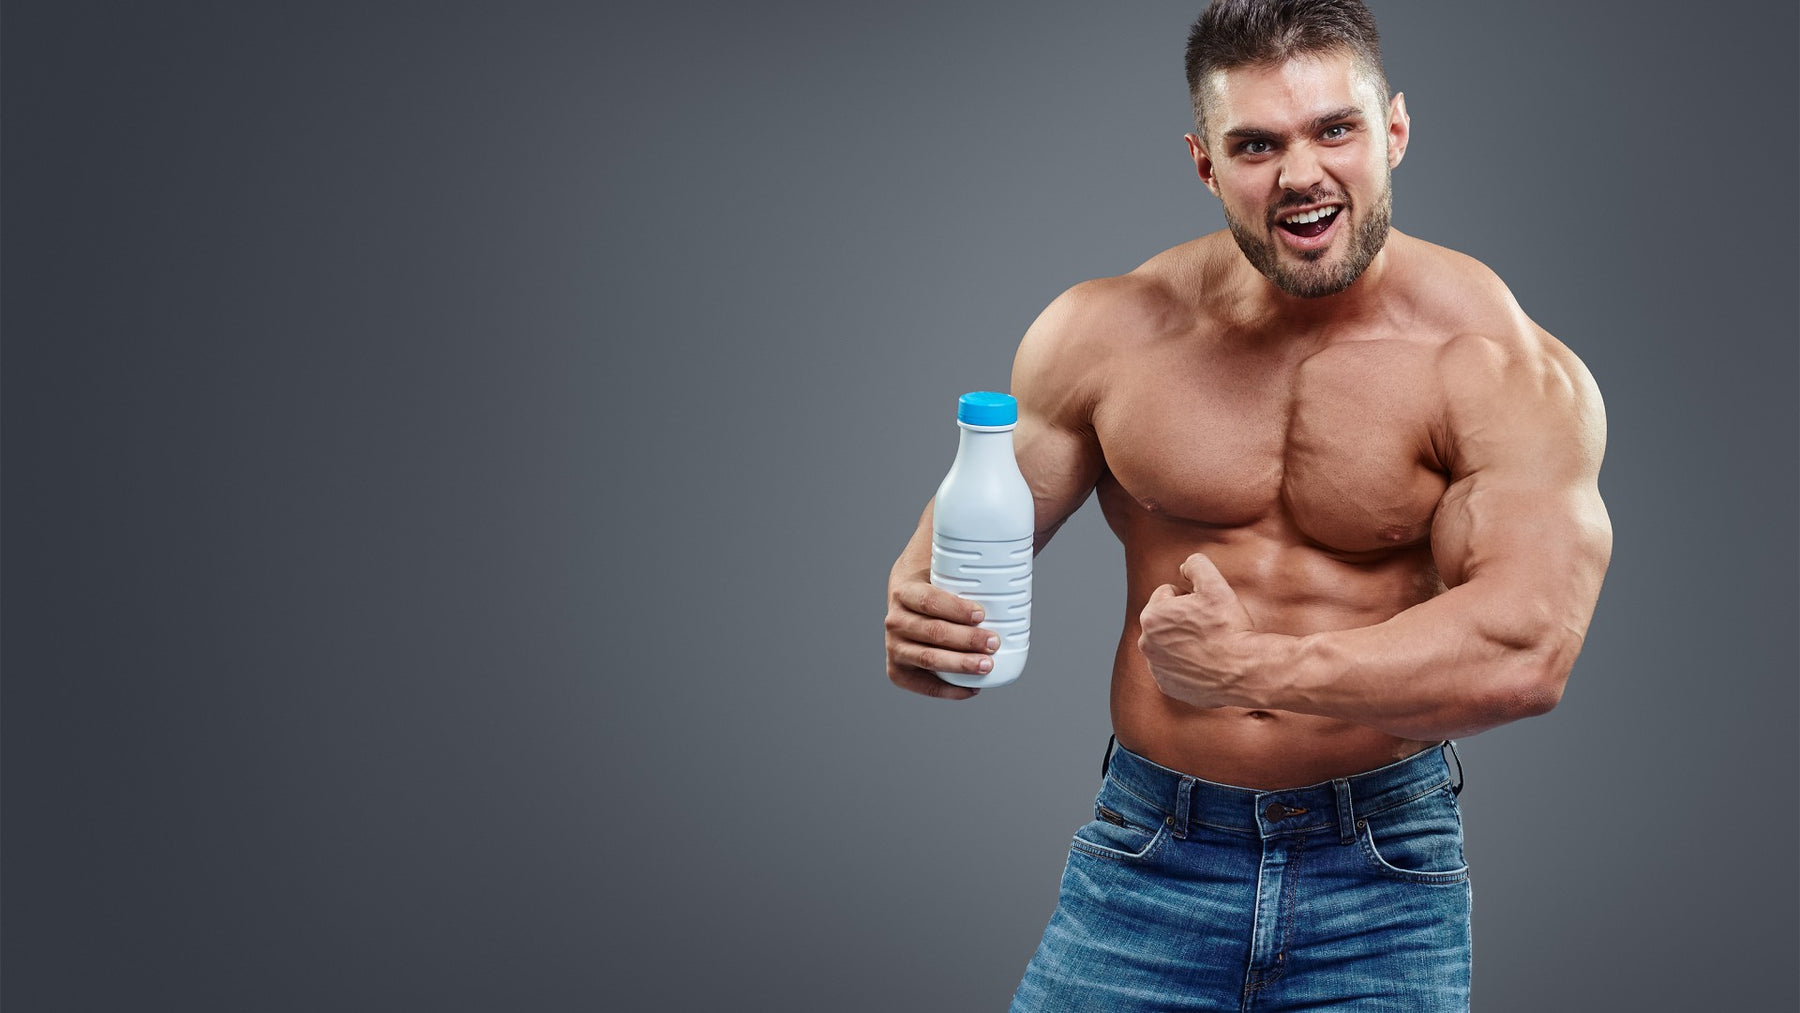 Why Do Bodybuilders Want Her Breast Milk?